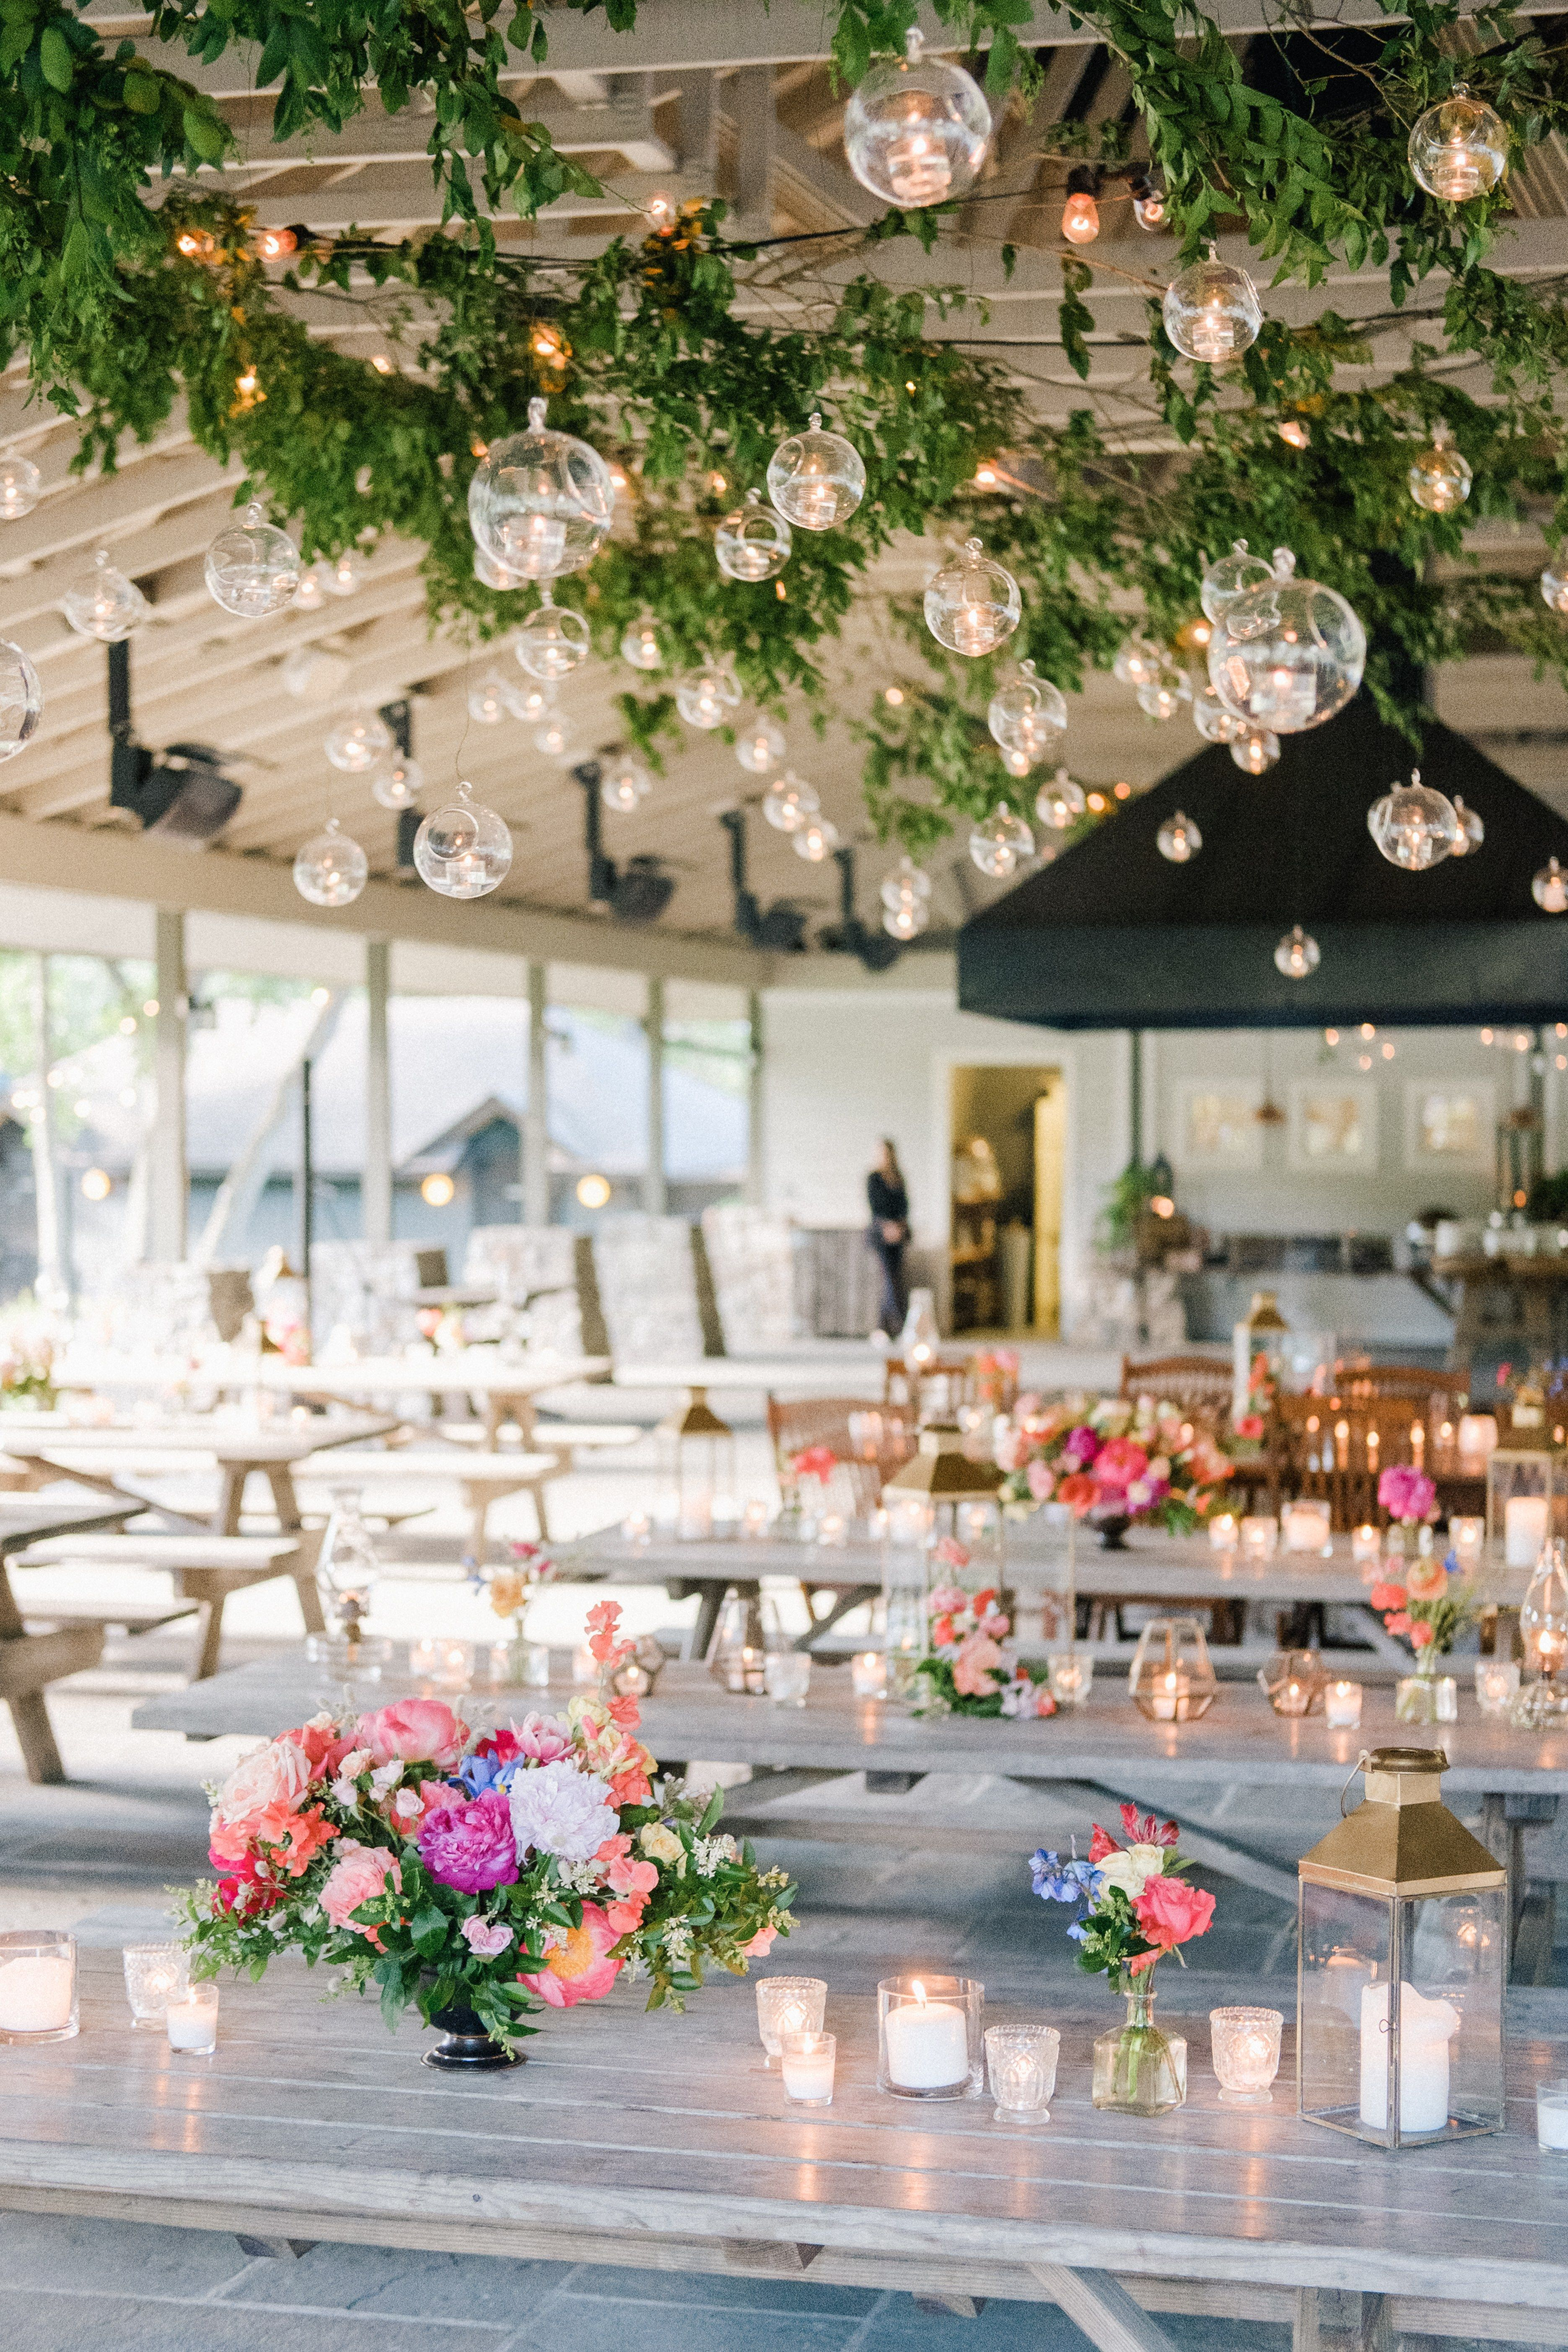 A Whimsical Camp Inspired Wedding Weekend In Upstate New York